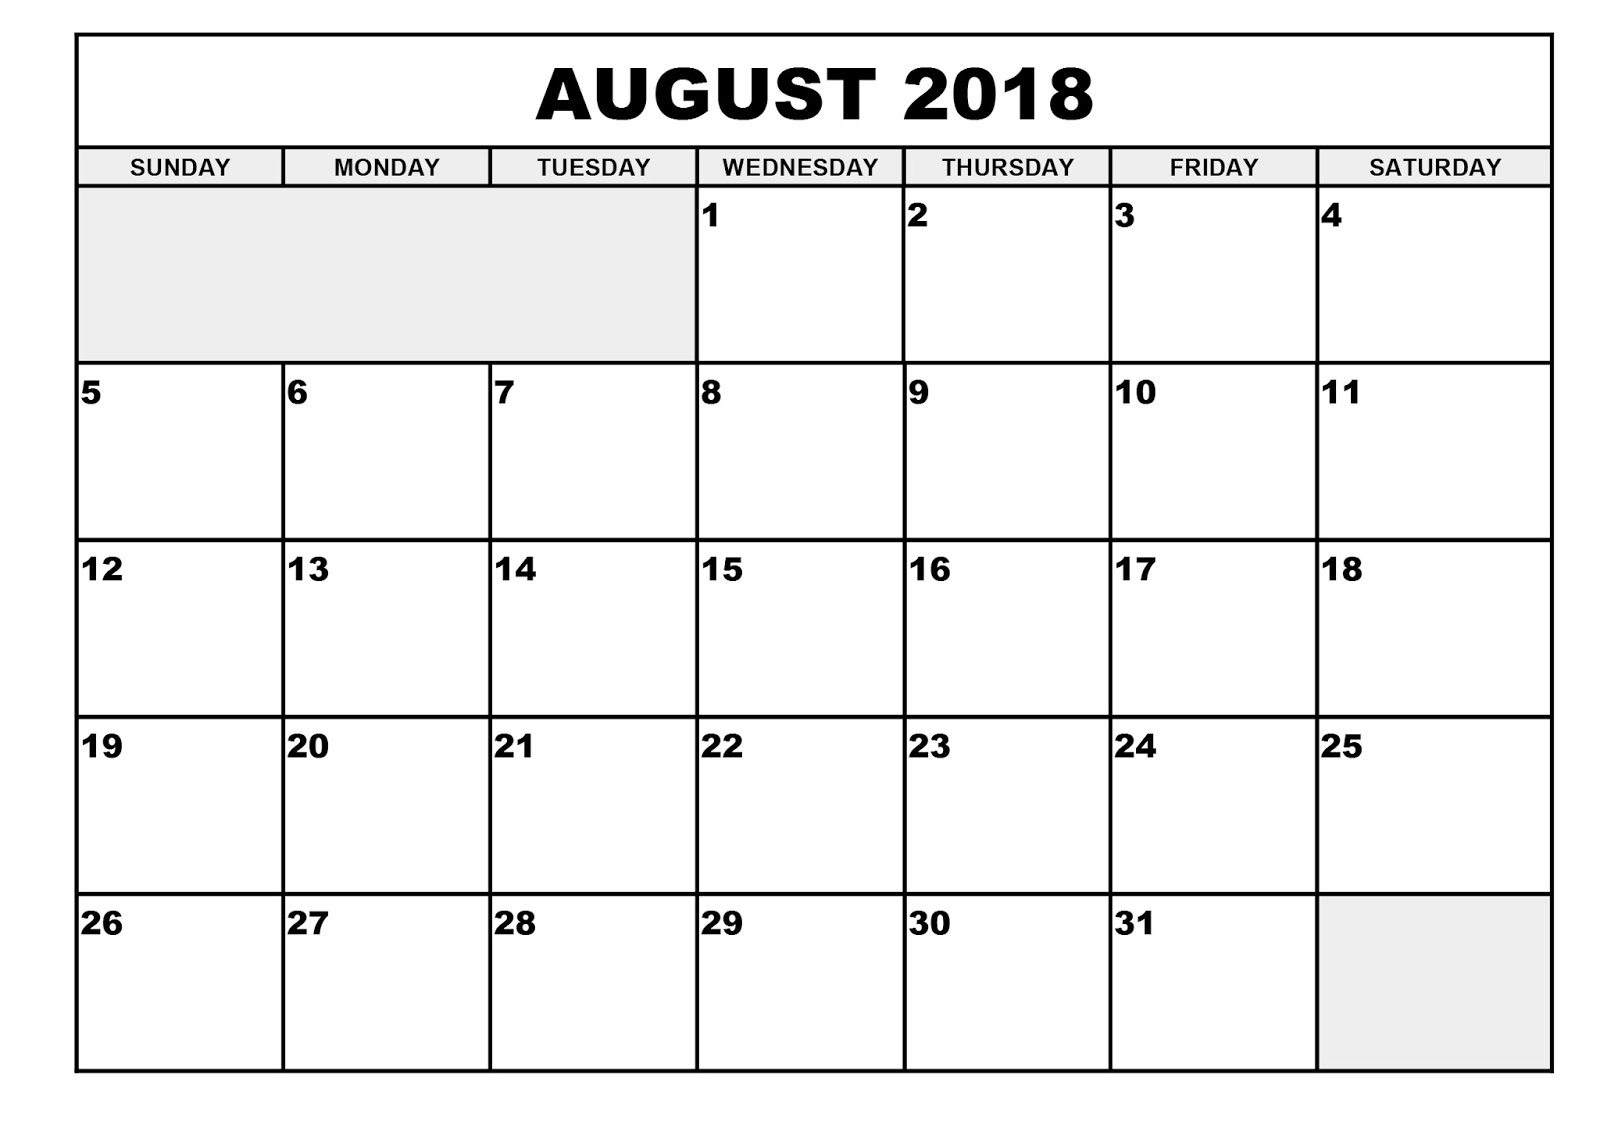 calendar august 2018 printable schedule free printable blank calendar Free Pretty Printable Calendars August 2018 erdferdf